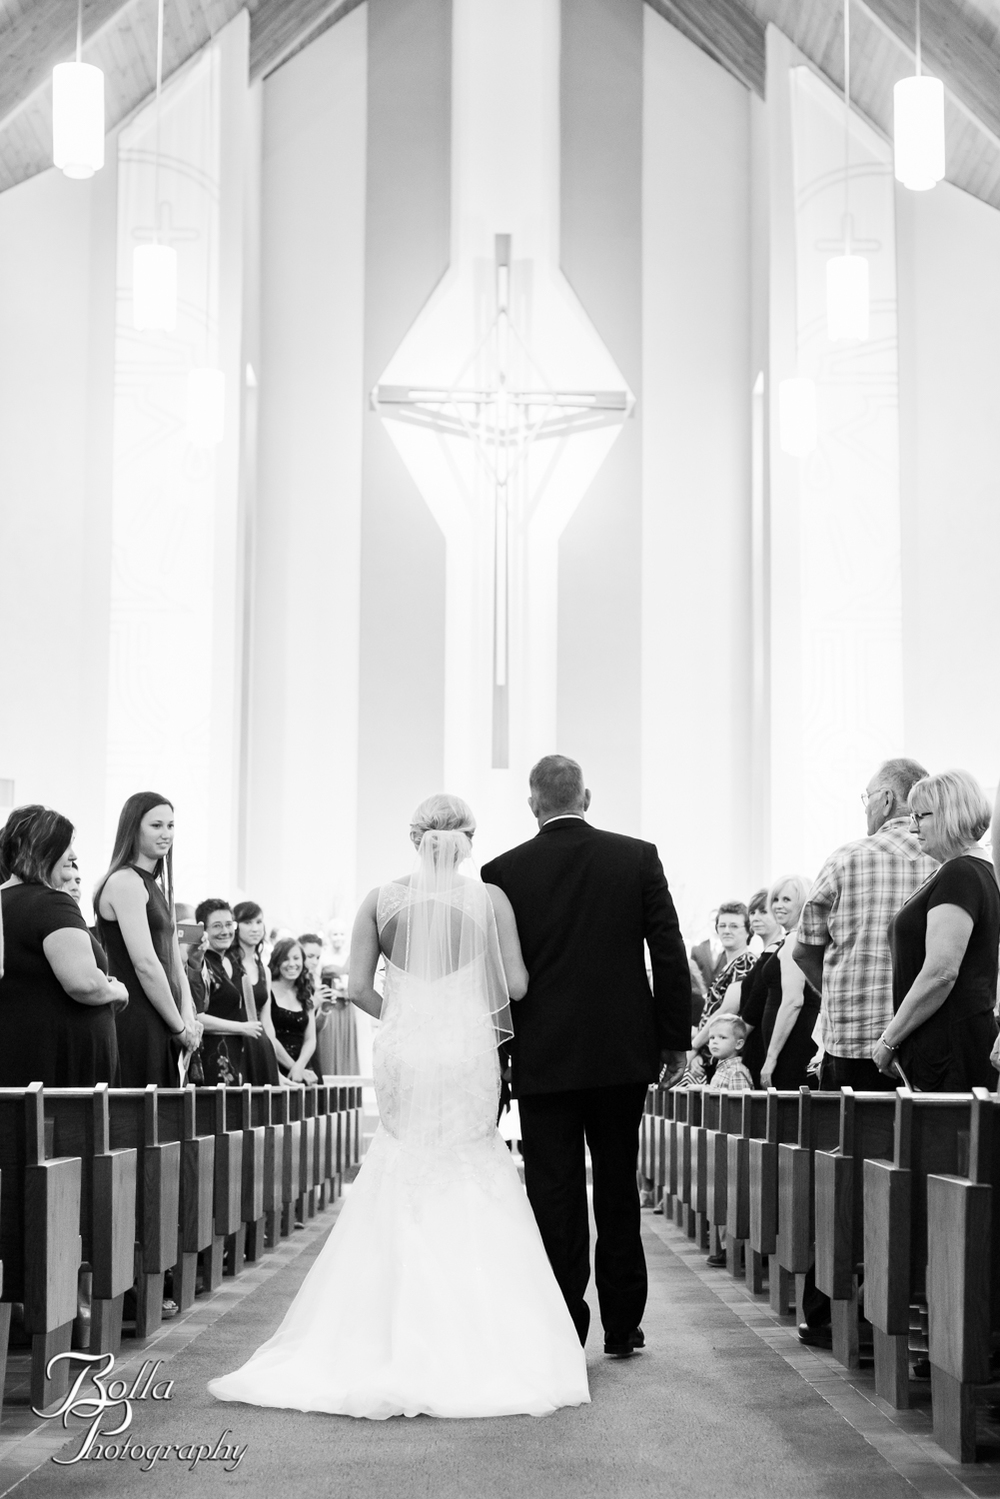 Bolla_Photography_St_Louis_wedding_photographer_Edwardsville_Highland-0156.jpg